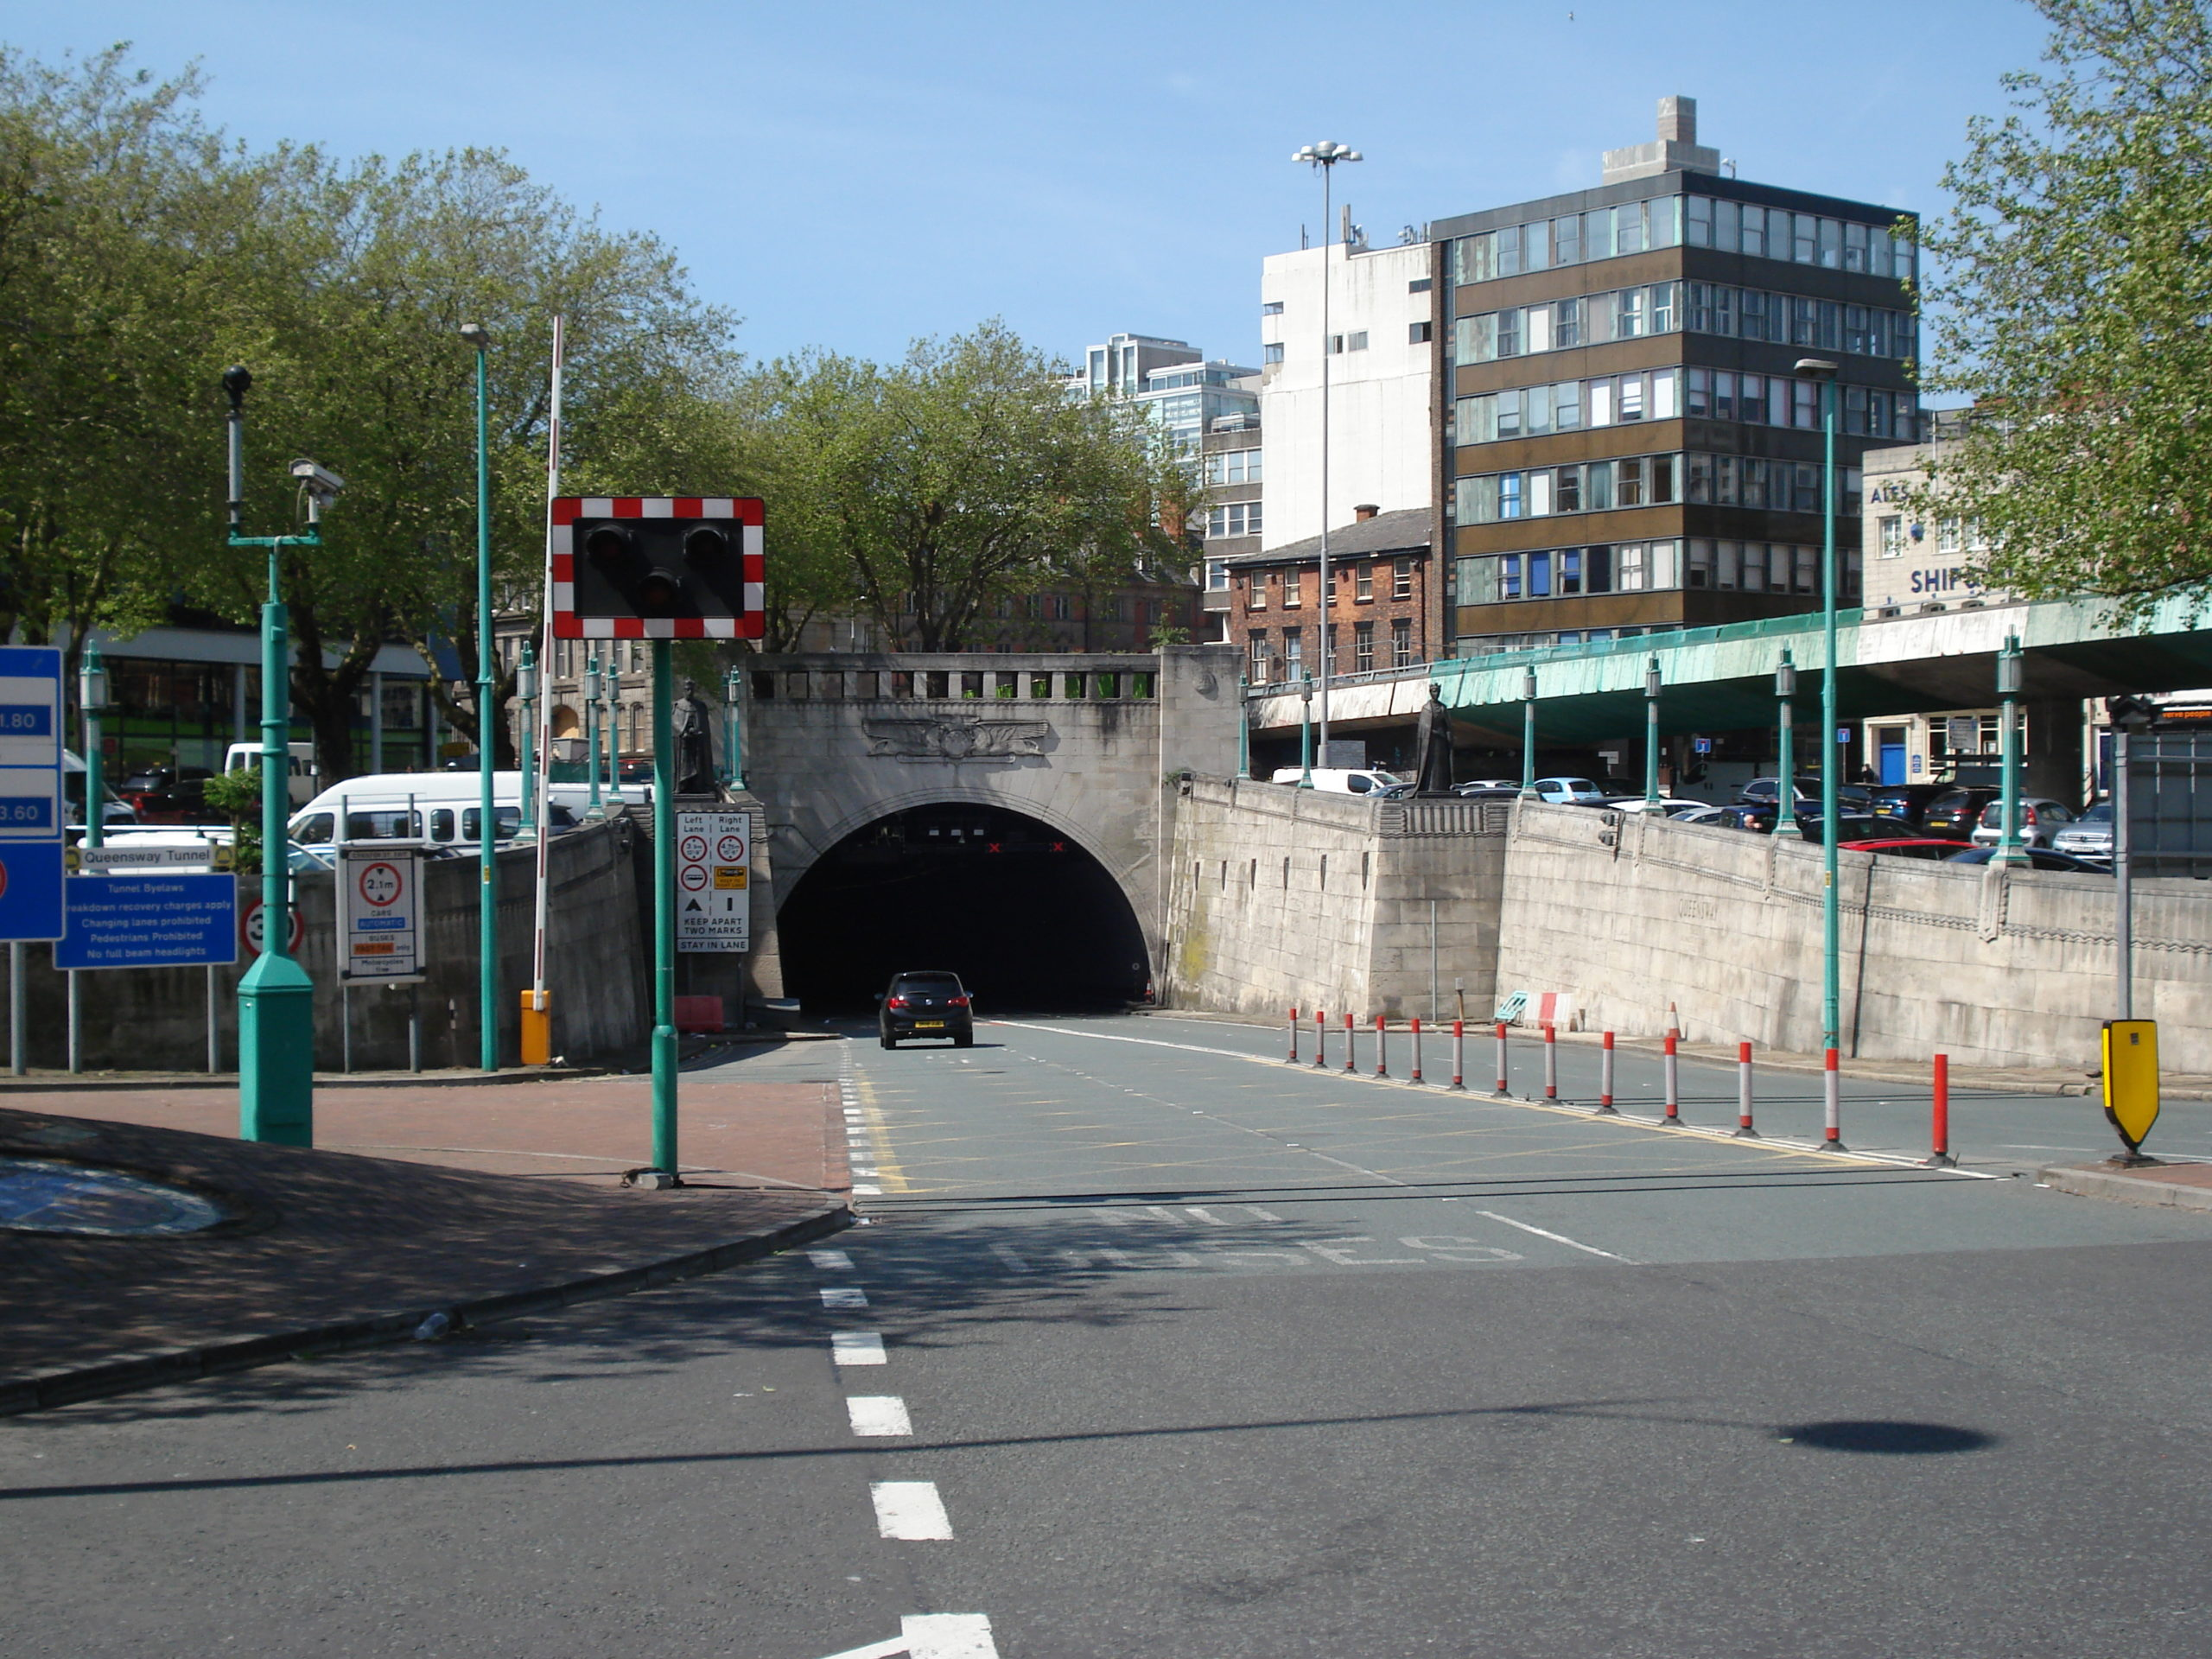 Queensway tunnel, Liverpool - Now